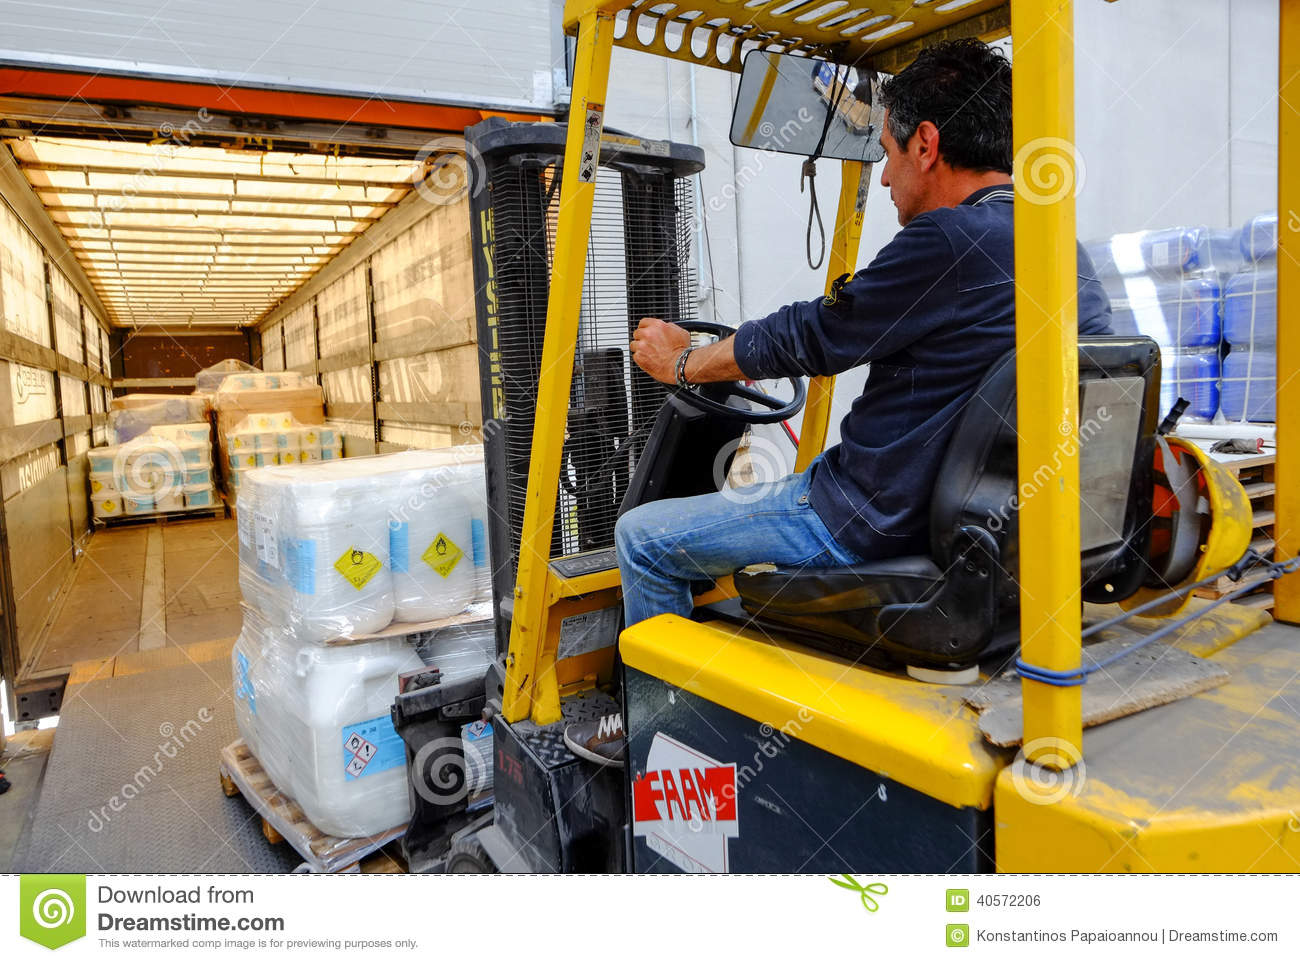 Forklift In Motion At Warehouse Editorial Photo - Image: 40572206